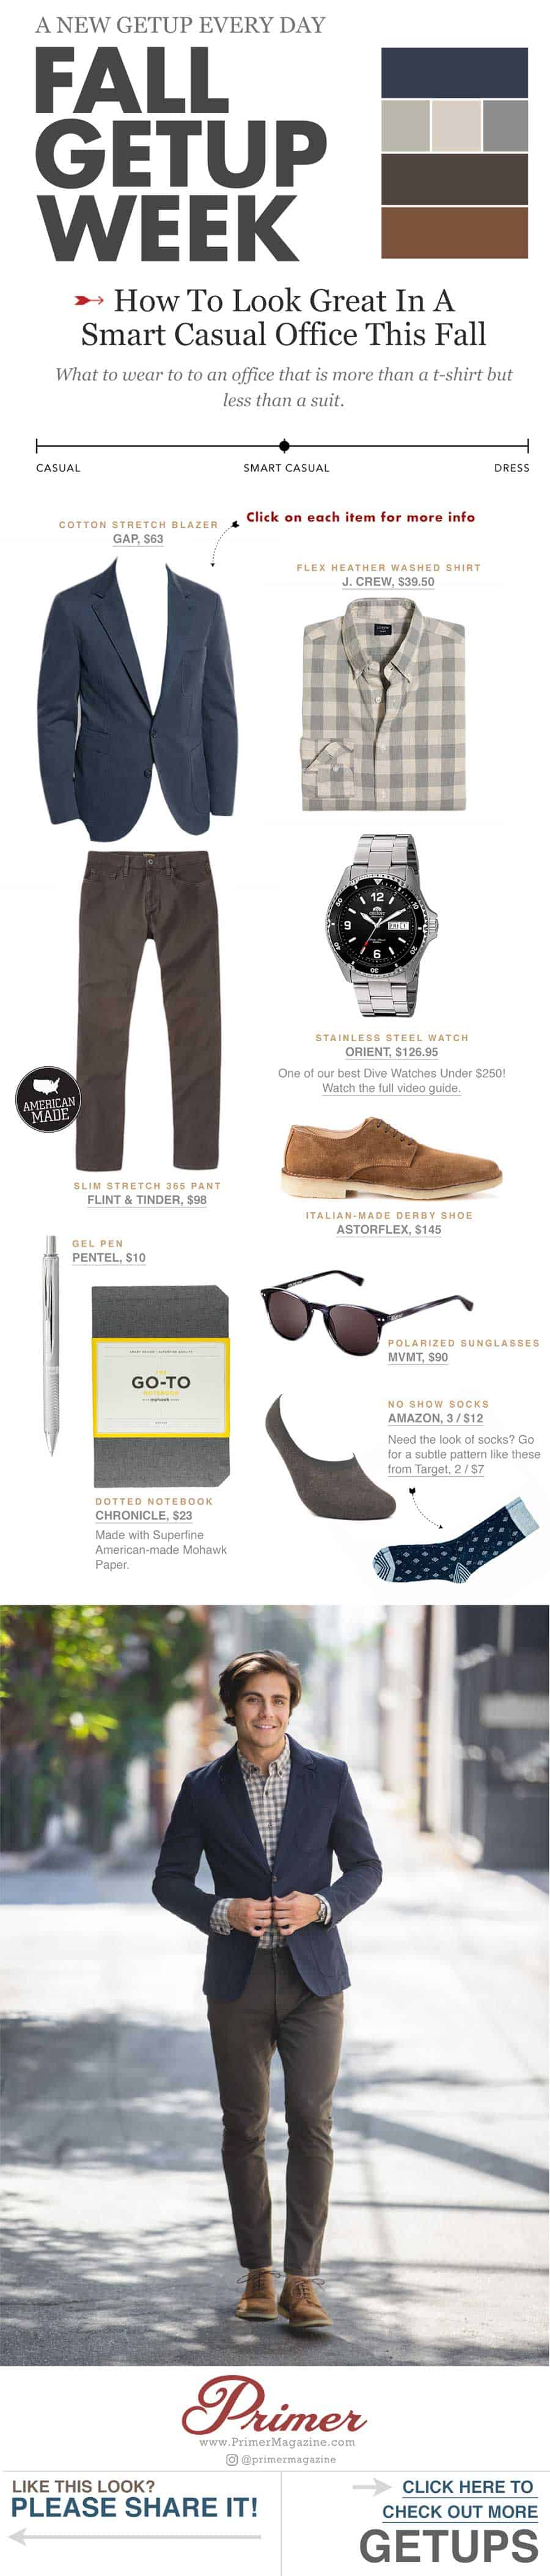 Fall Getup Week - Smart Casual Office - men fashion